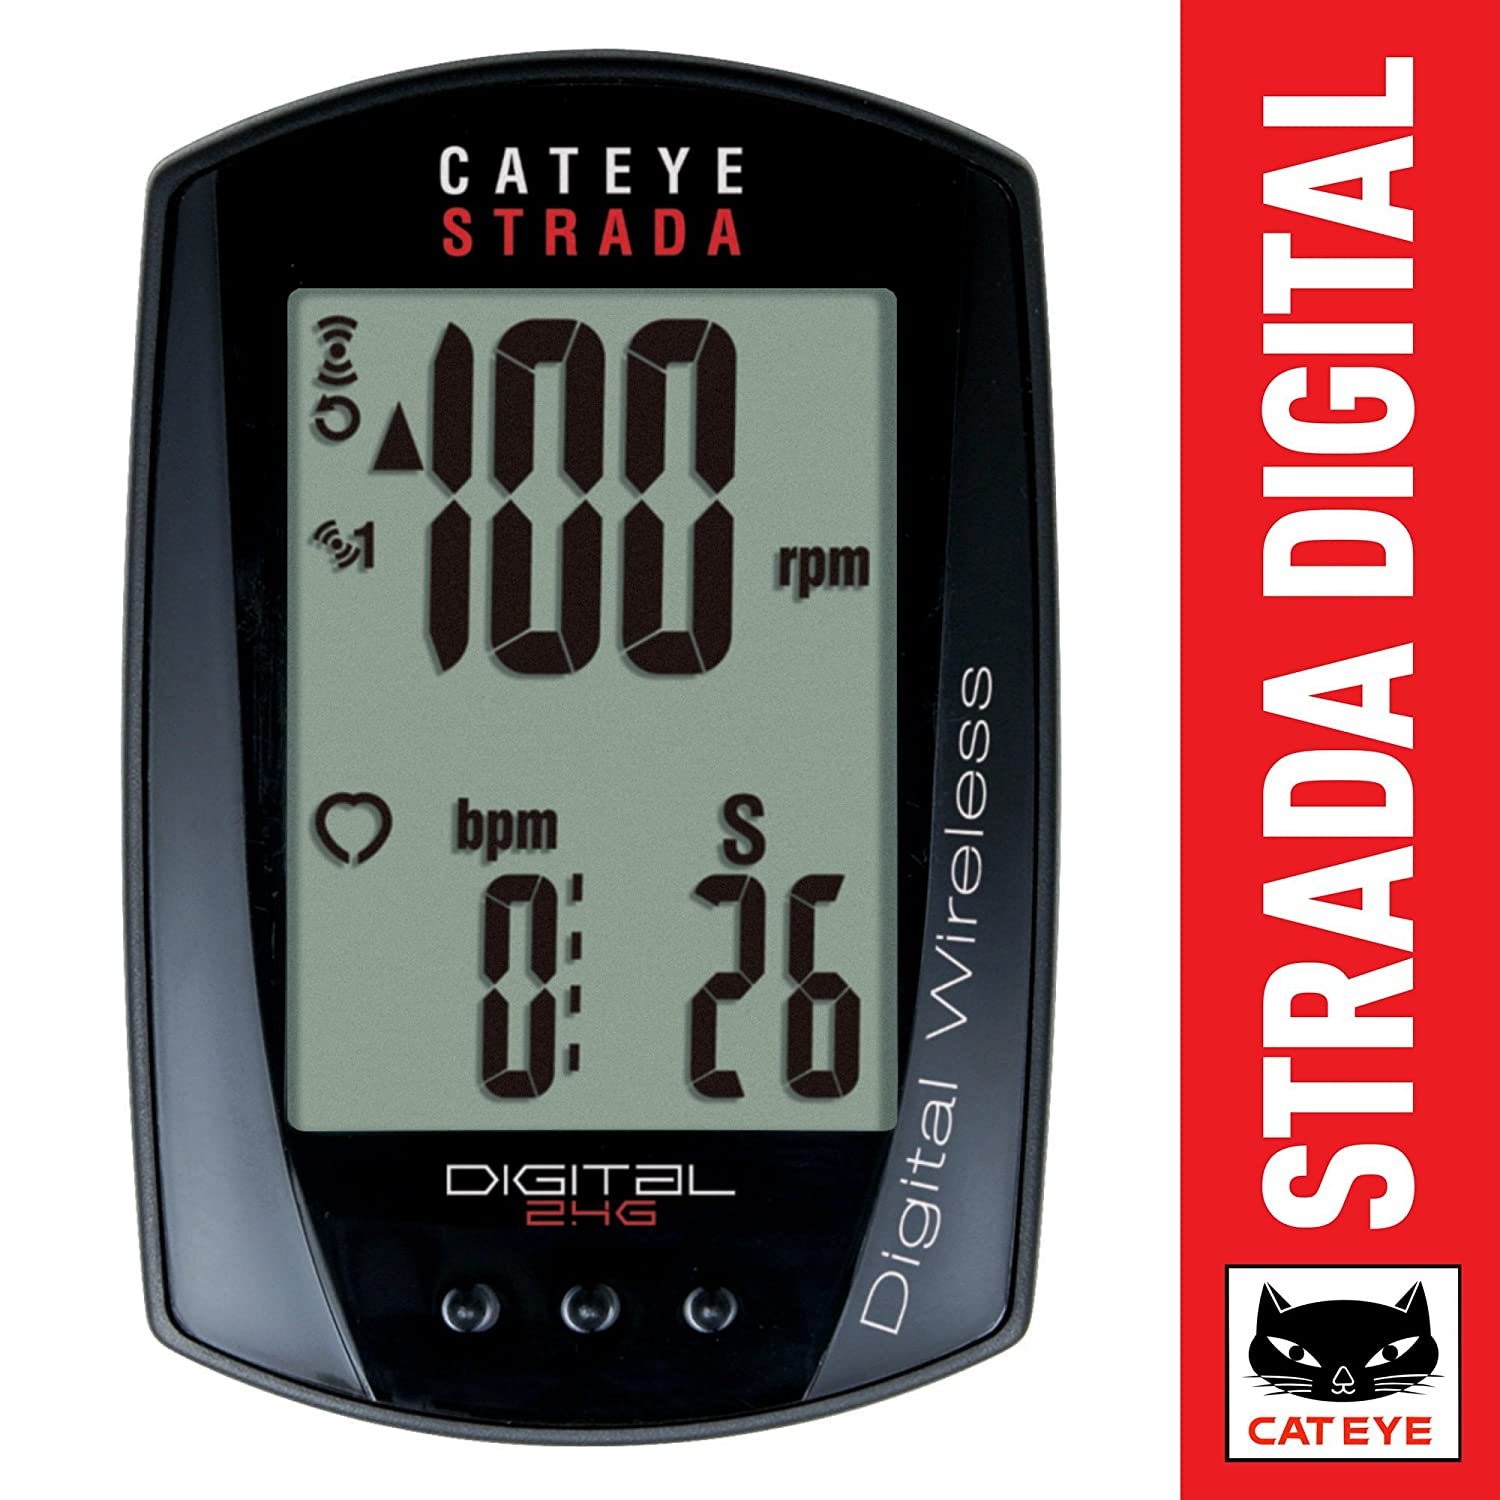 CAT EYE Strada Digital Wireless Bike Computer